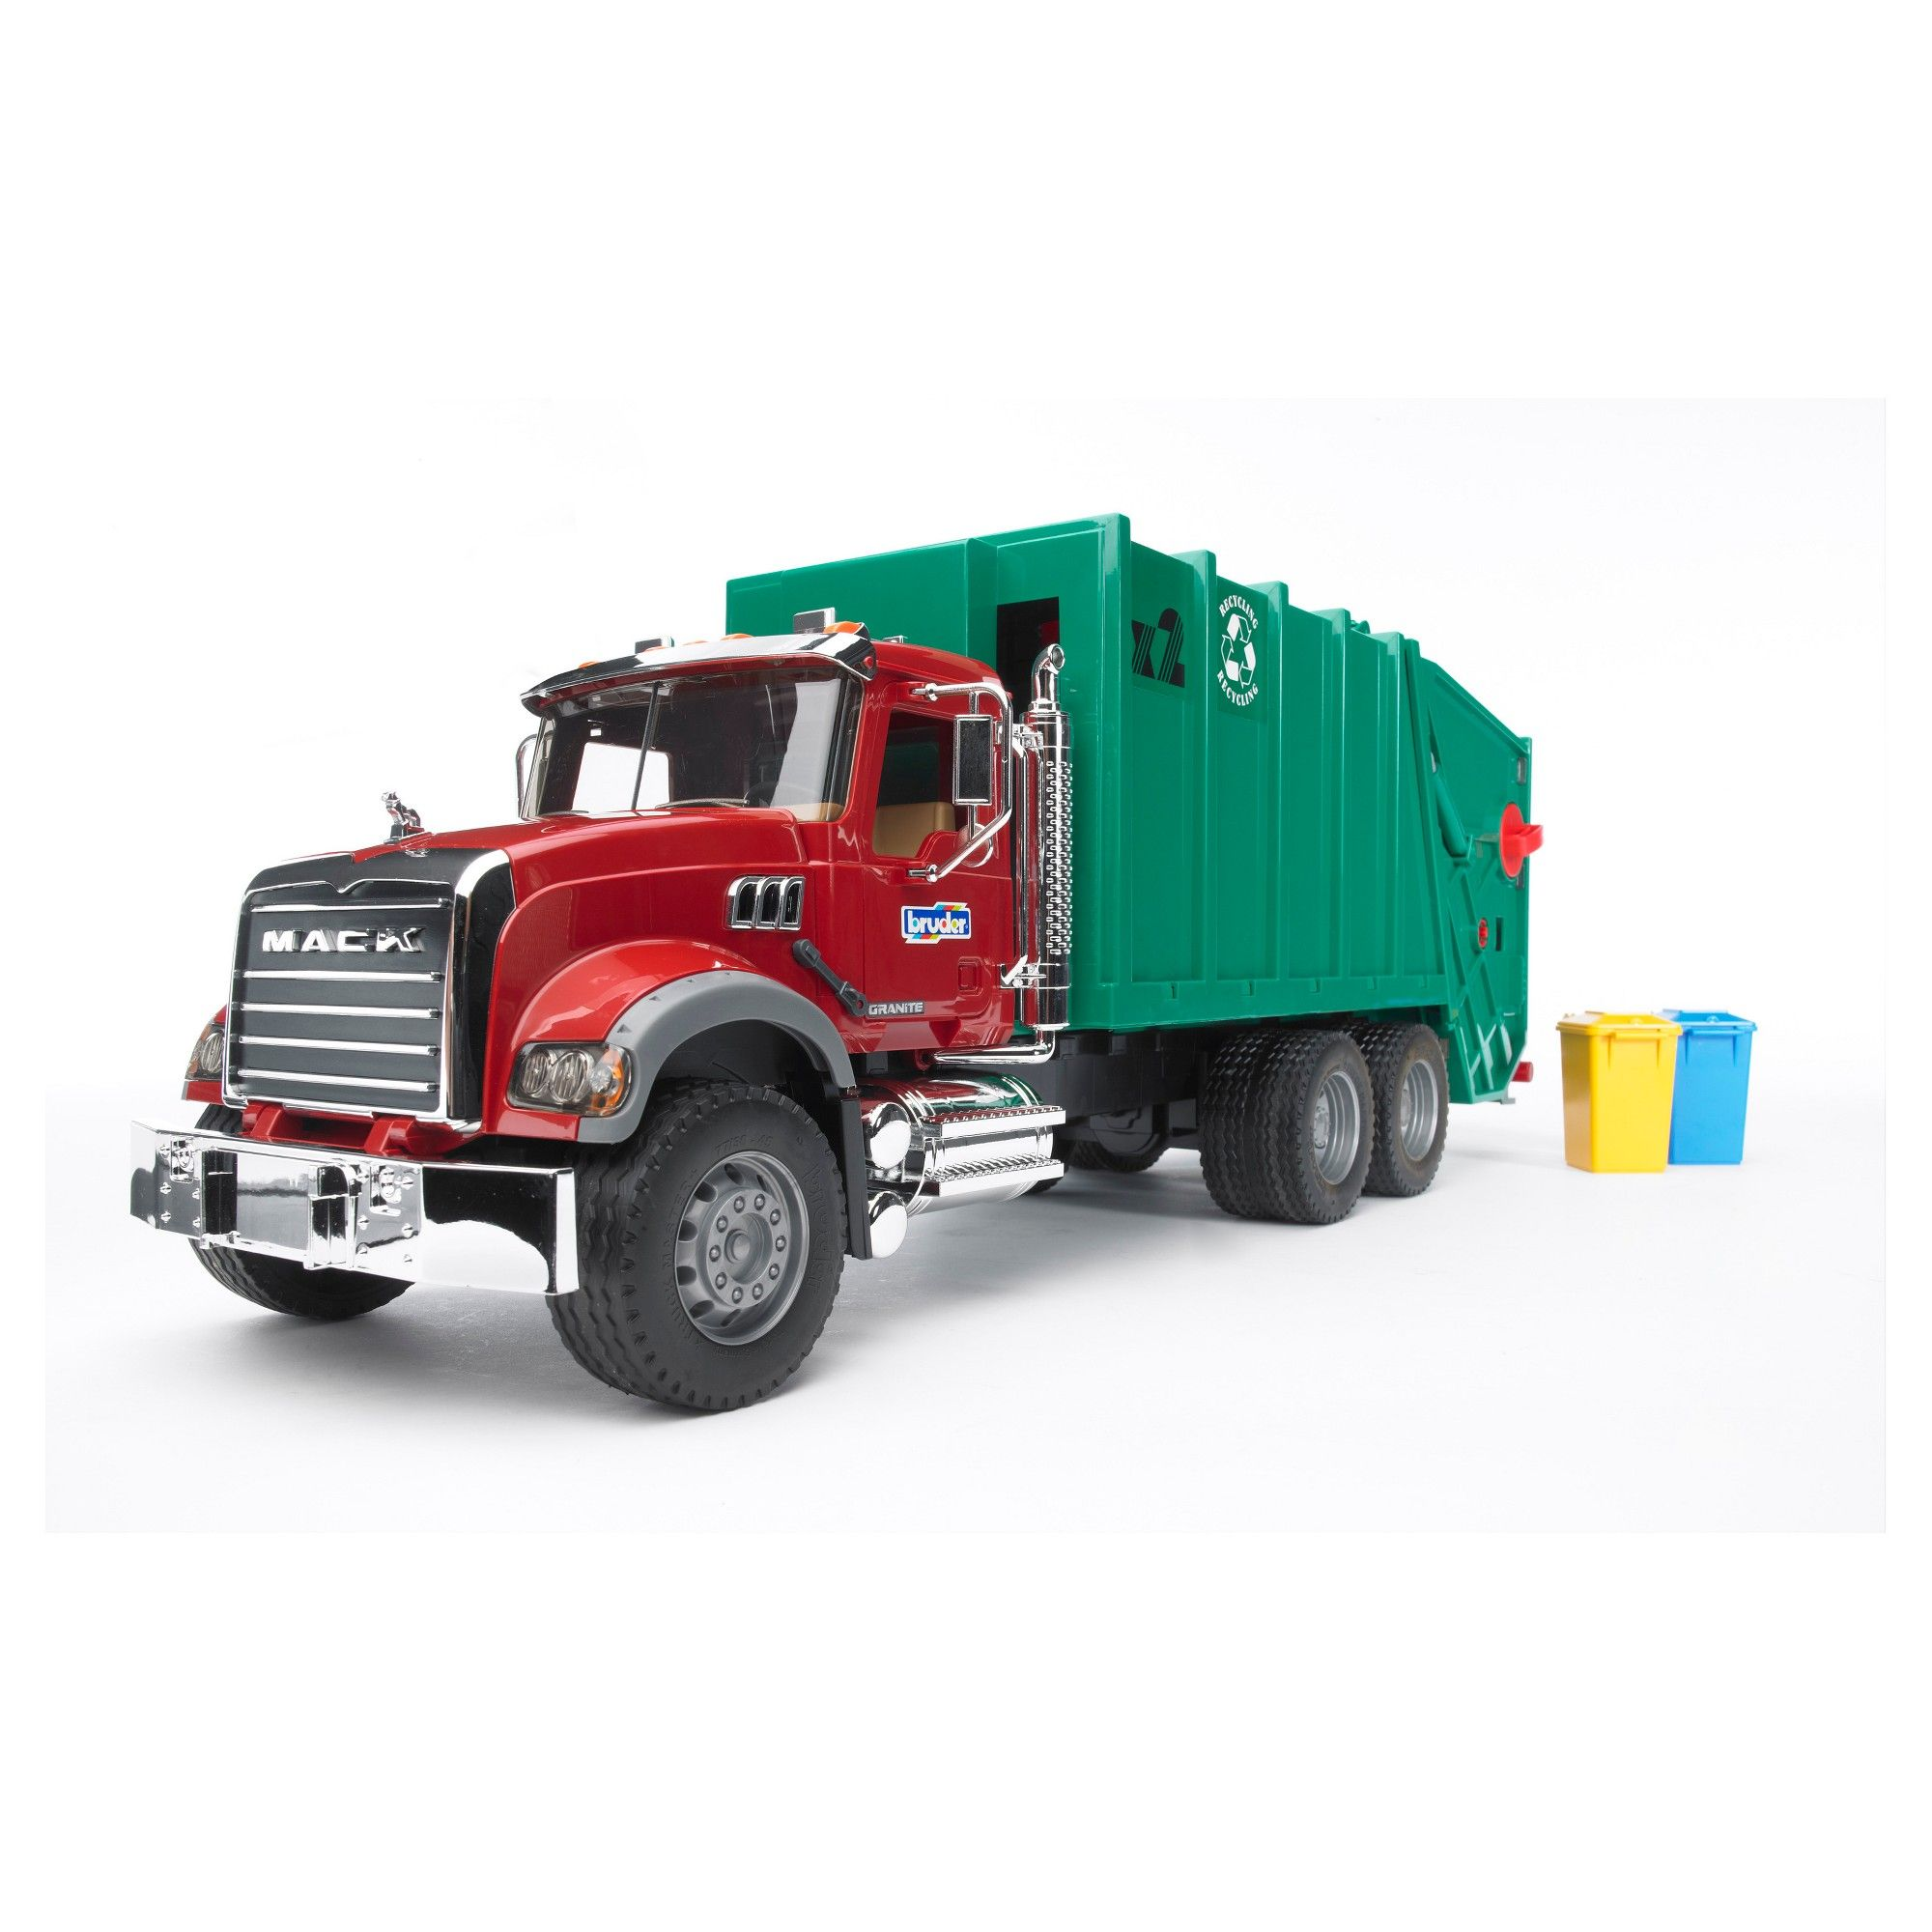 Bruder Toys Mack Granite Garbage Truck 1 16 Scale Realistic Functional Toy Garbage Collection Vehicle Garbage Truck Trucks Trucks Lifted Diesel